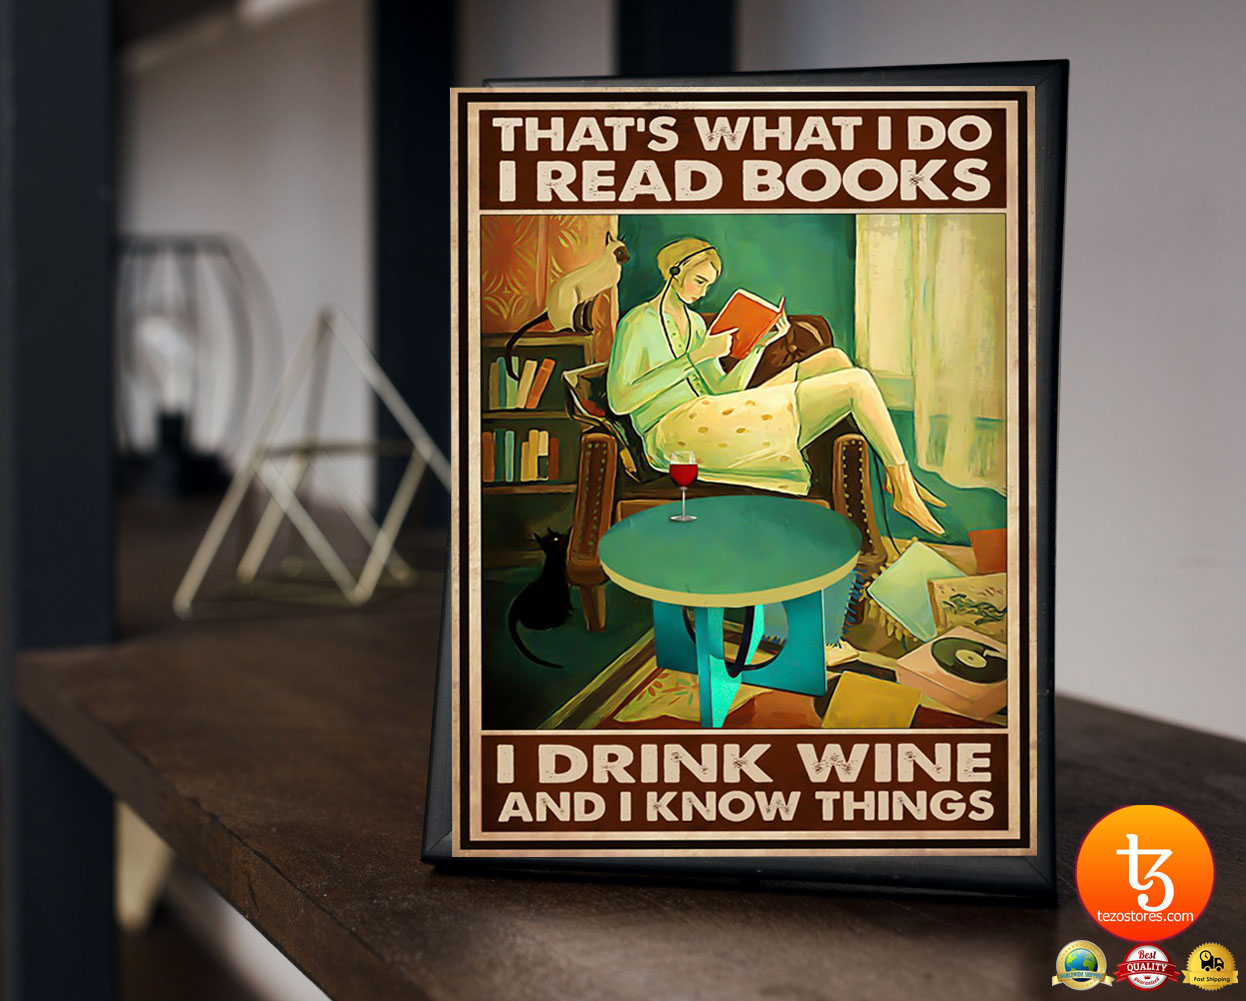 That's what I do I read books I drink wine and I know things poster 23